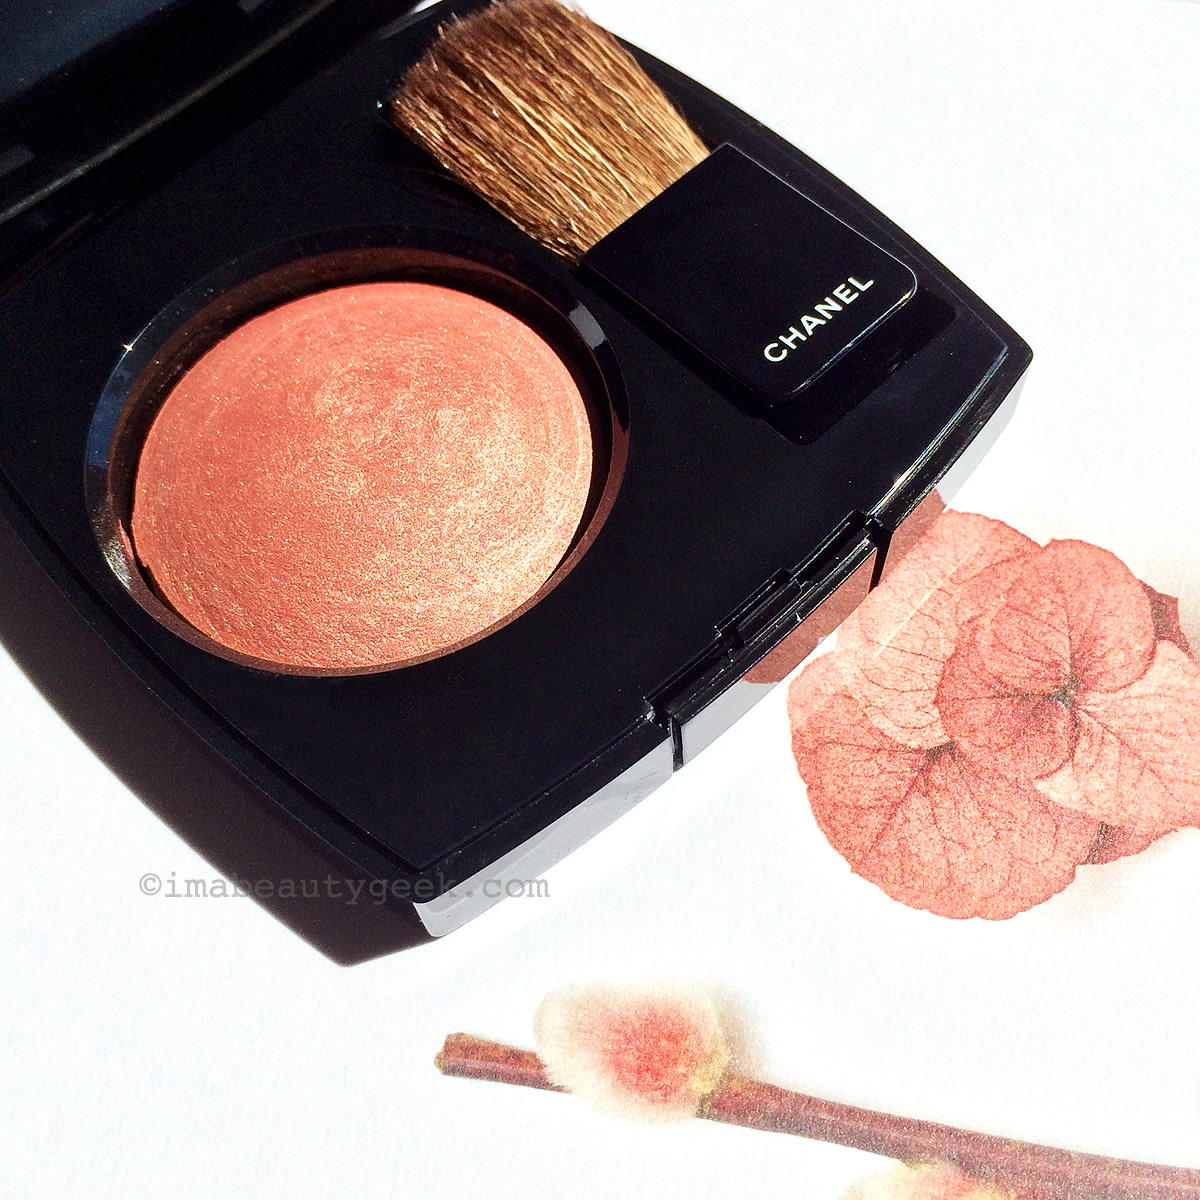 Chanel Fall 2015 makeup: Les Automnales collection, Joues Contraste blush in 260 Alezane